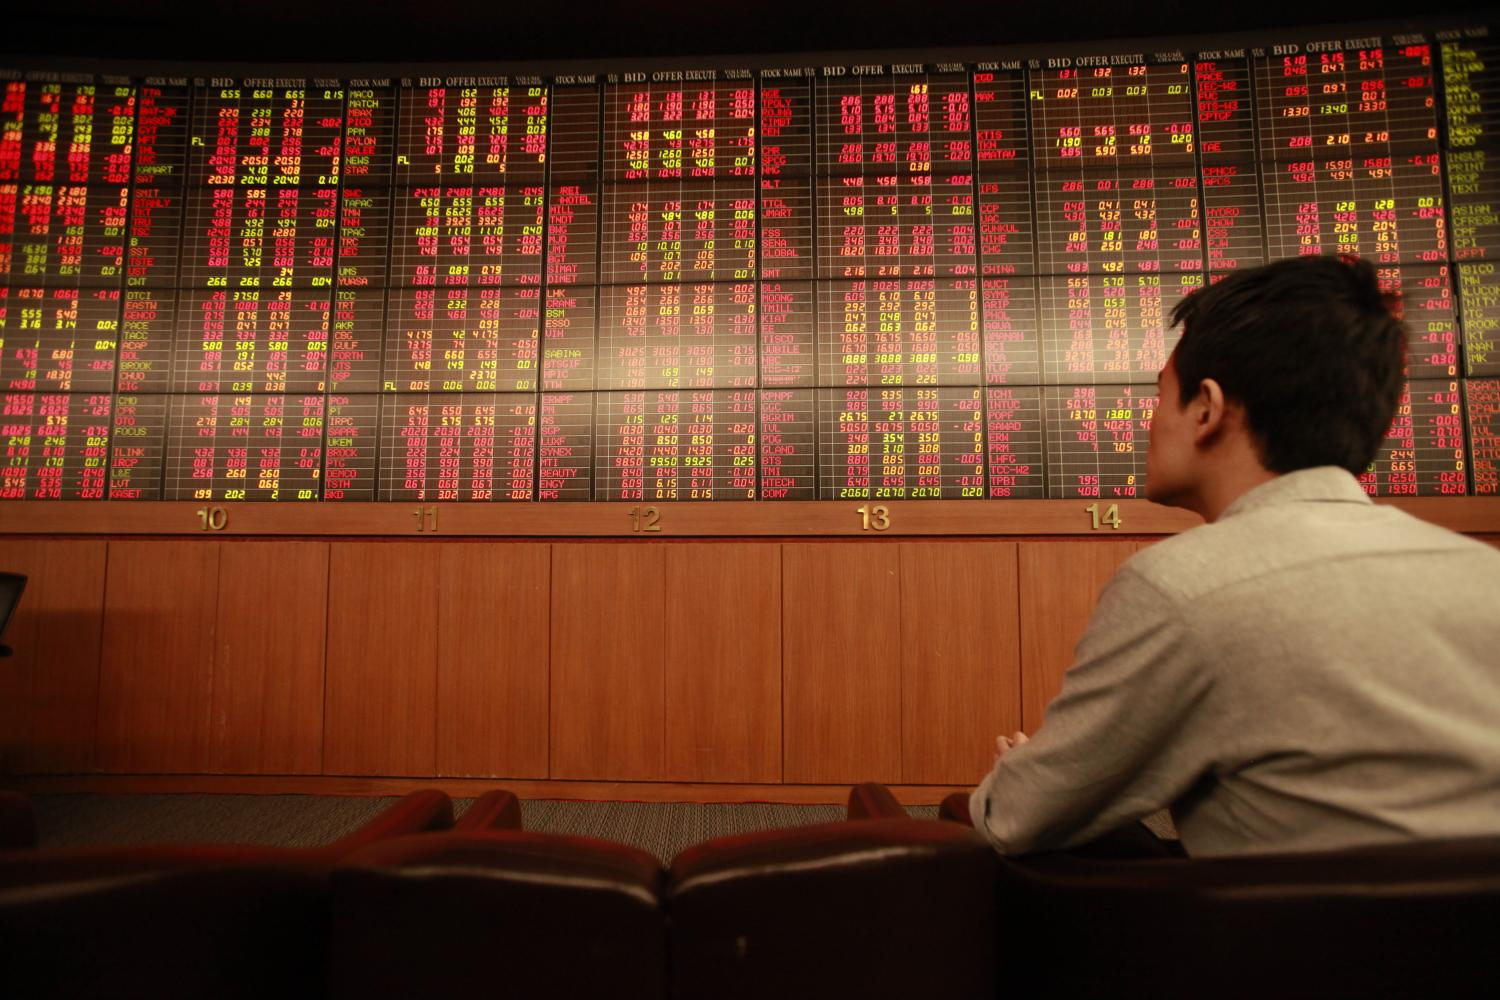 A man looks at share prices on an electronic board at Asia Plus Securities headquarters on Sathon Road.The SET index on Monday plunged the most among Asia Pacific bourses by 1.32%. (Bangkok Post file photo)